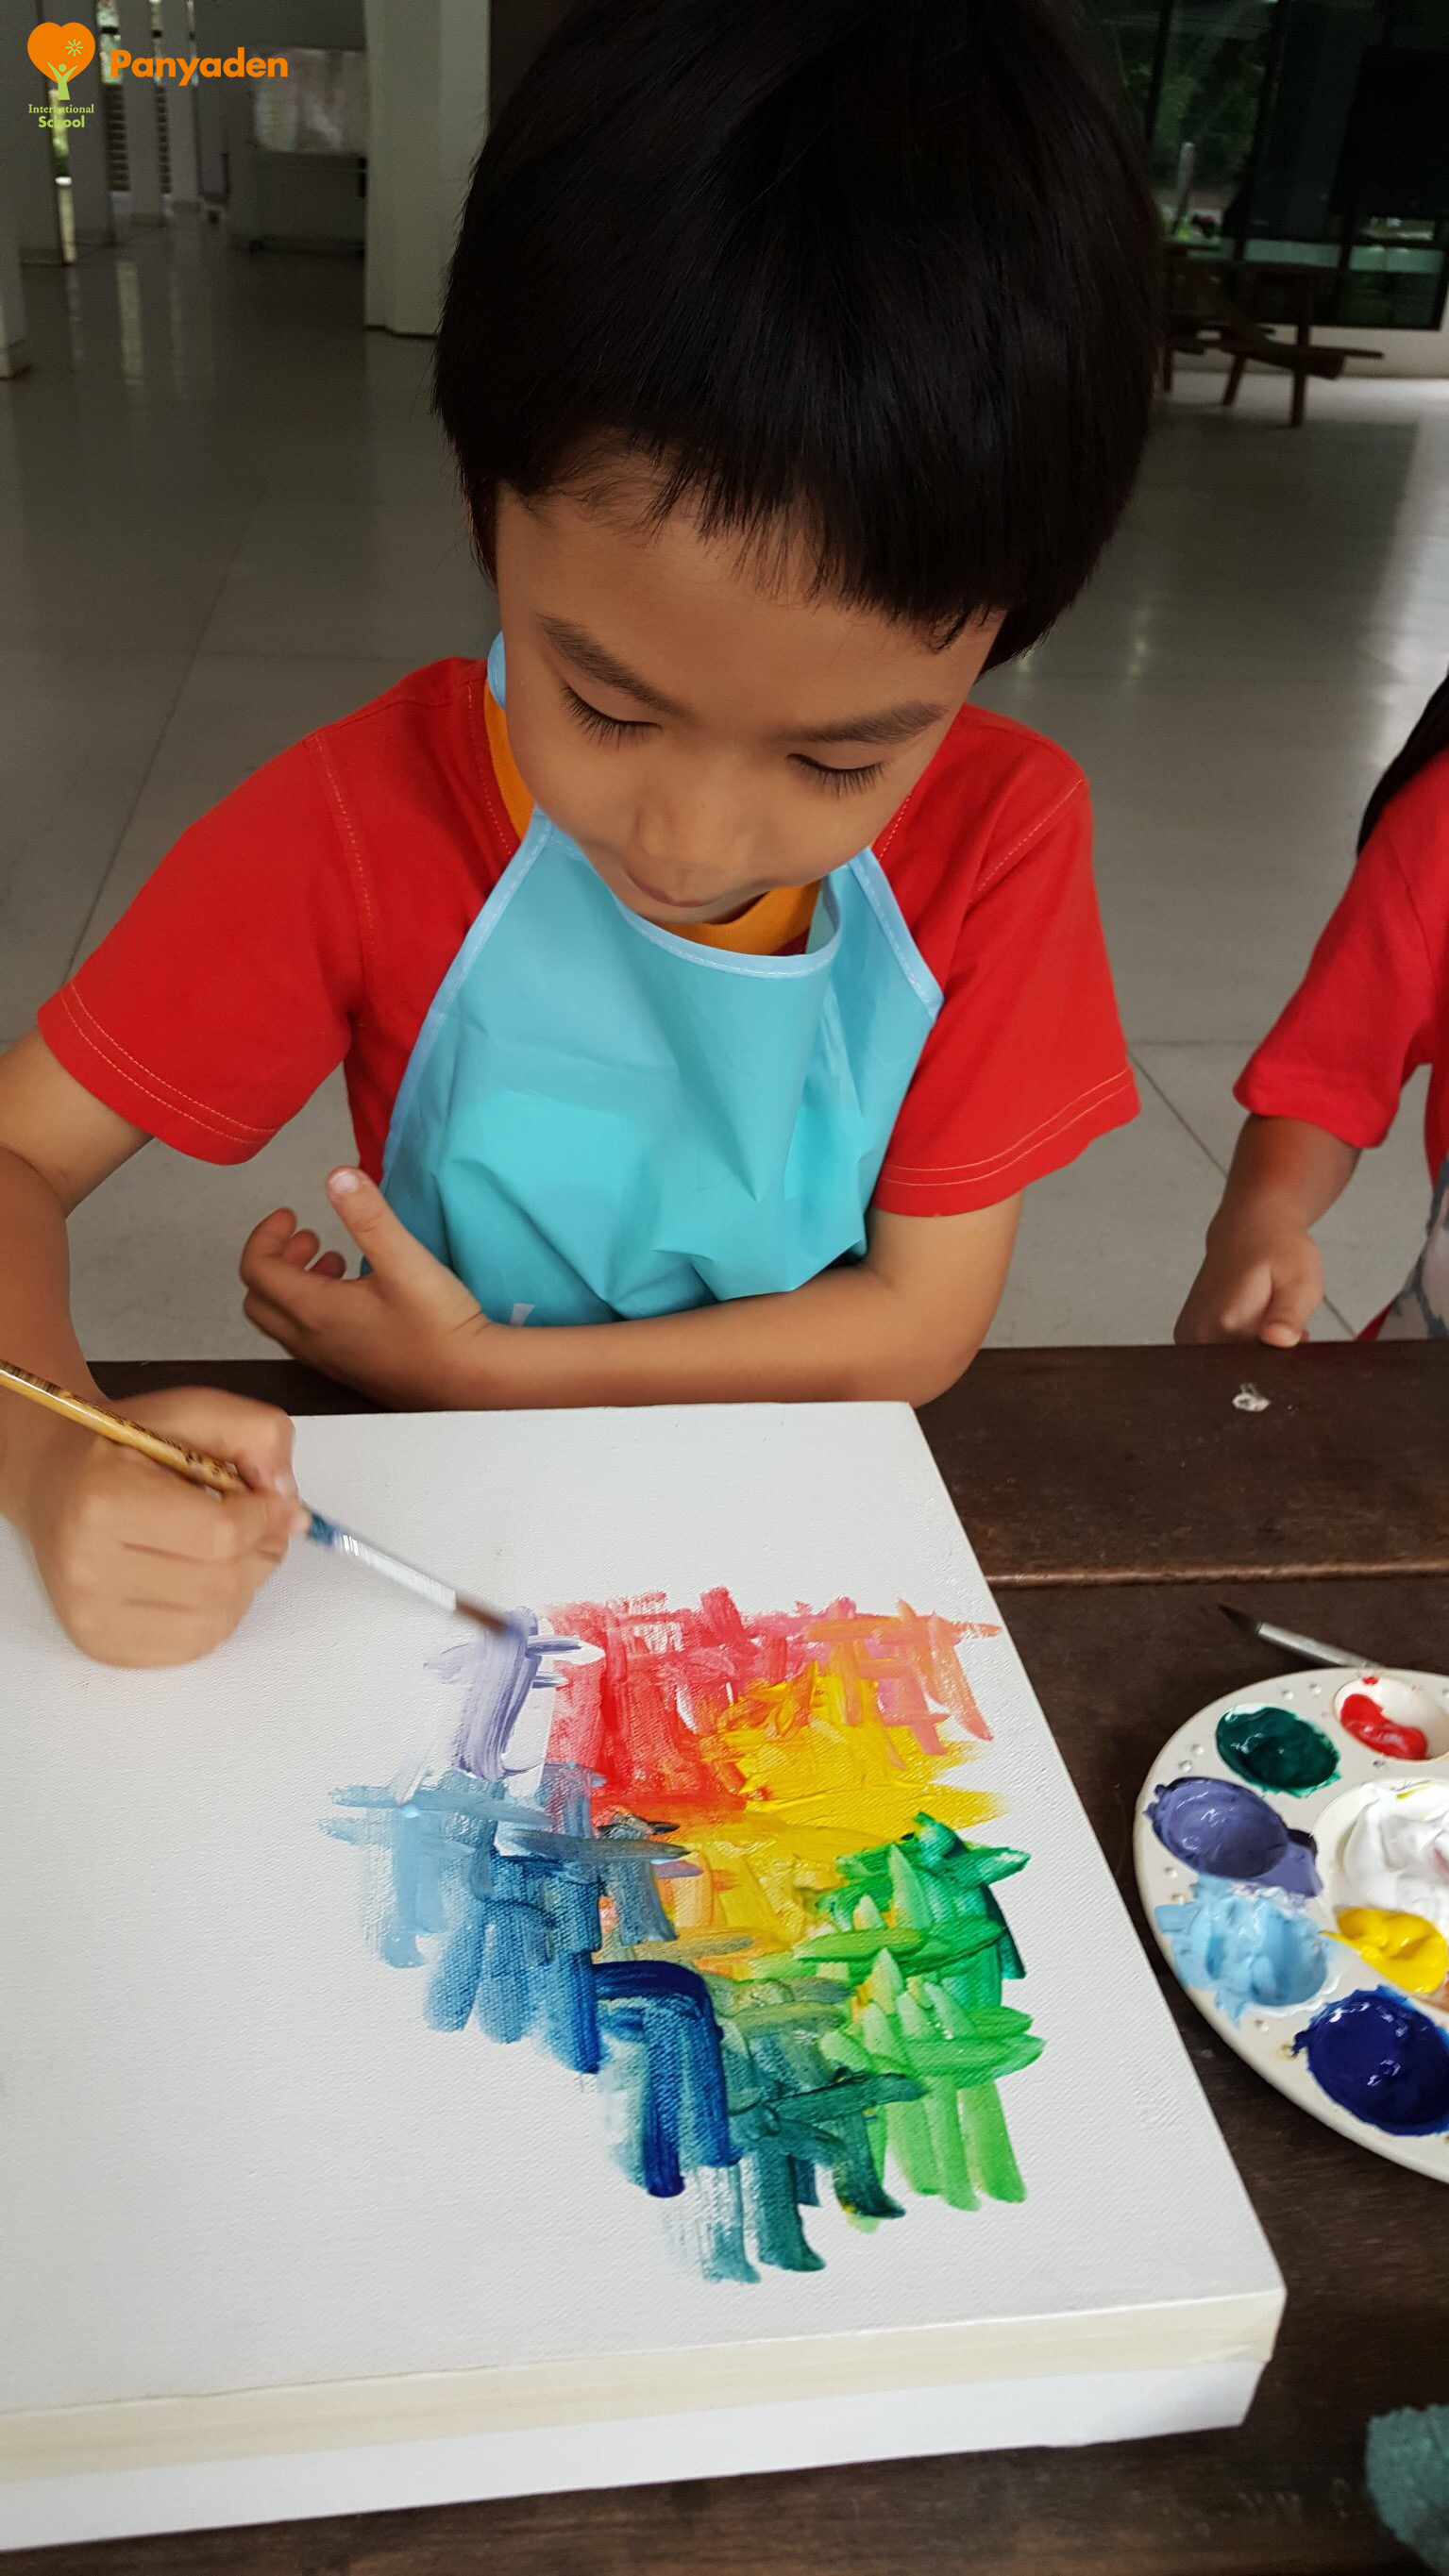 Rebuilding Panyaden: Y2 student painting for his art auction